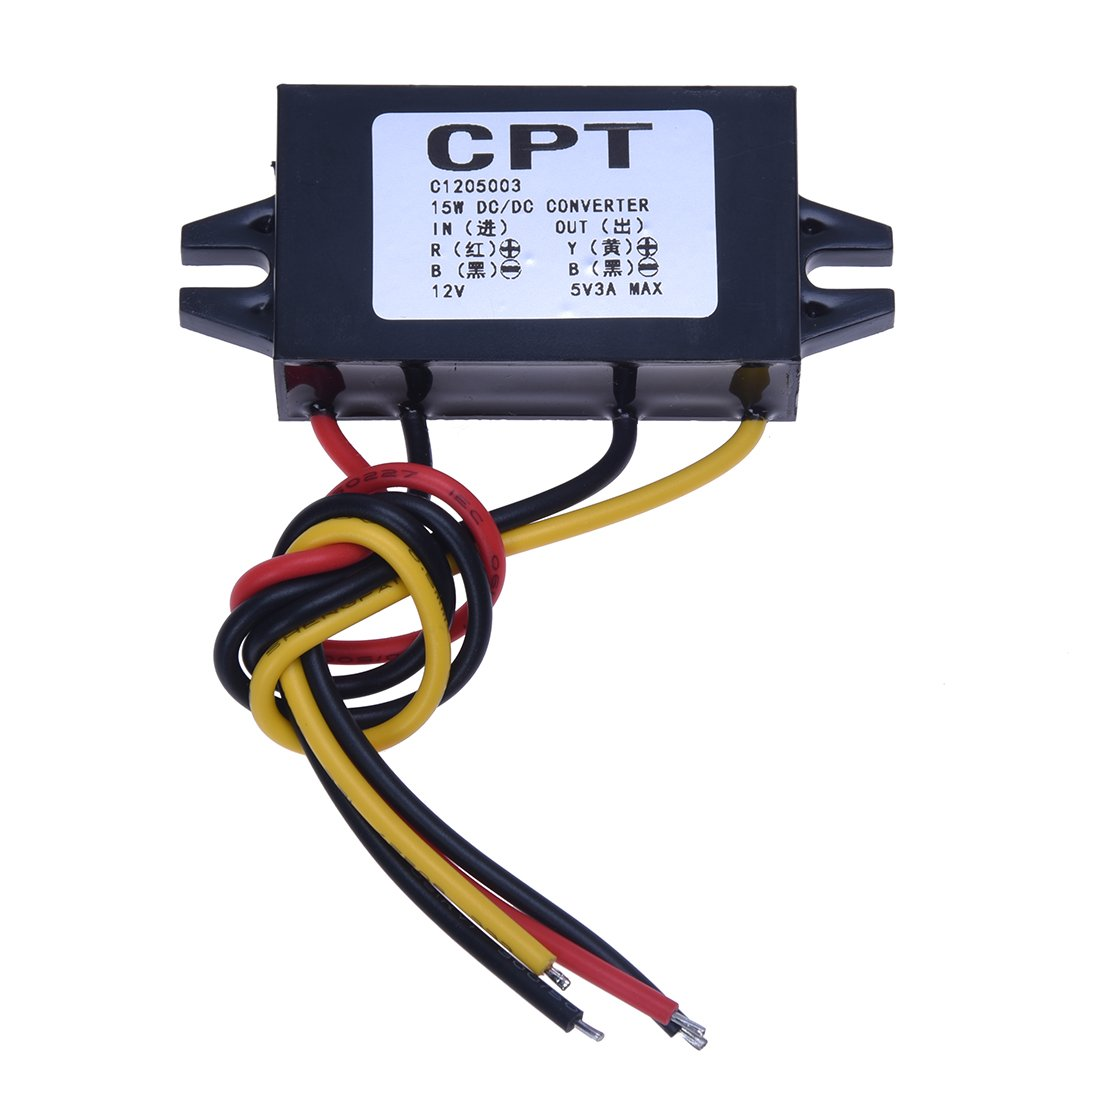 SODIAL(R) DC/DC Convertisseurs electriques Converter Regulator 12V to 5V 3A 15W Car Led Display Power Supply Module DCCON-C3A